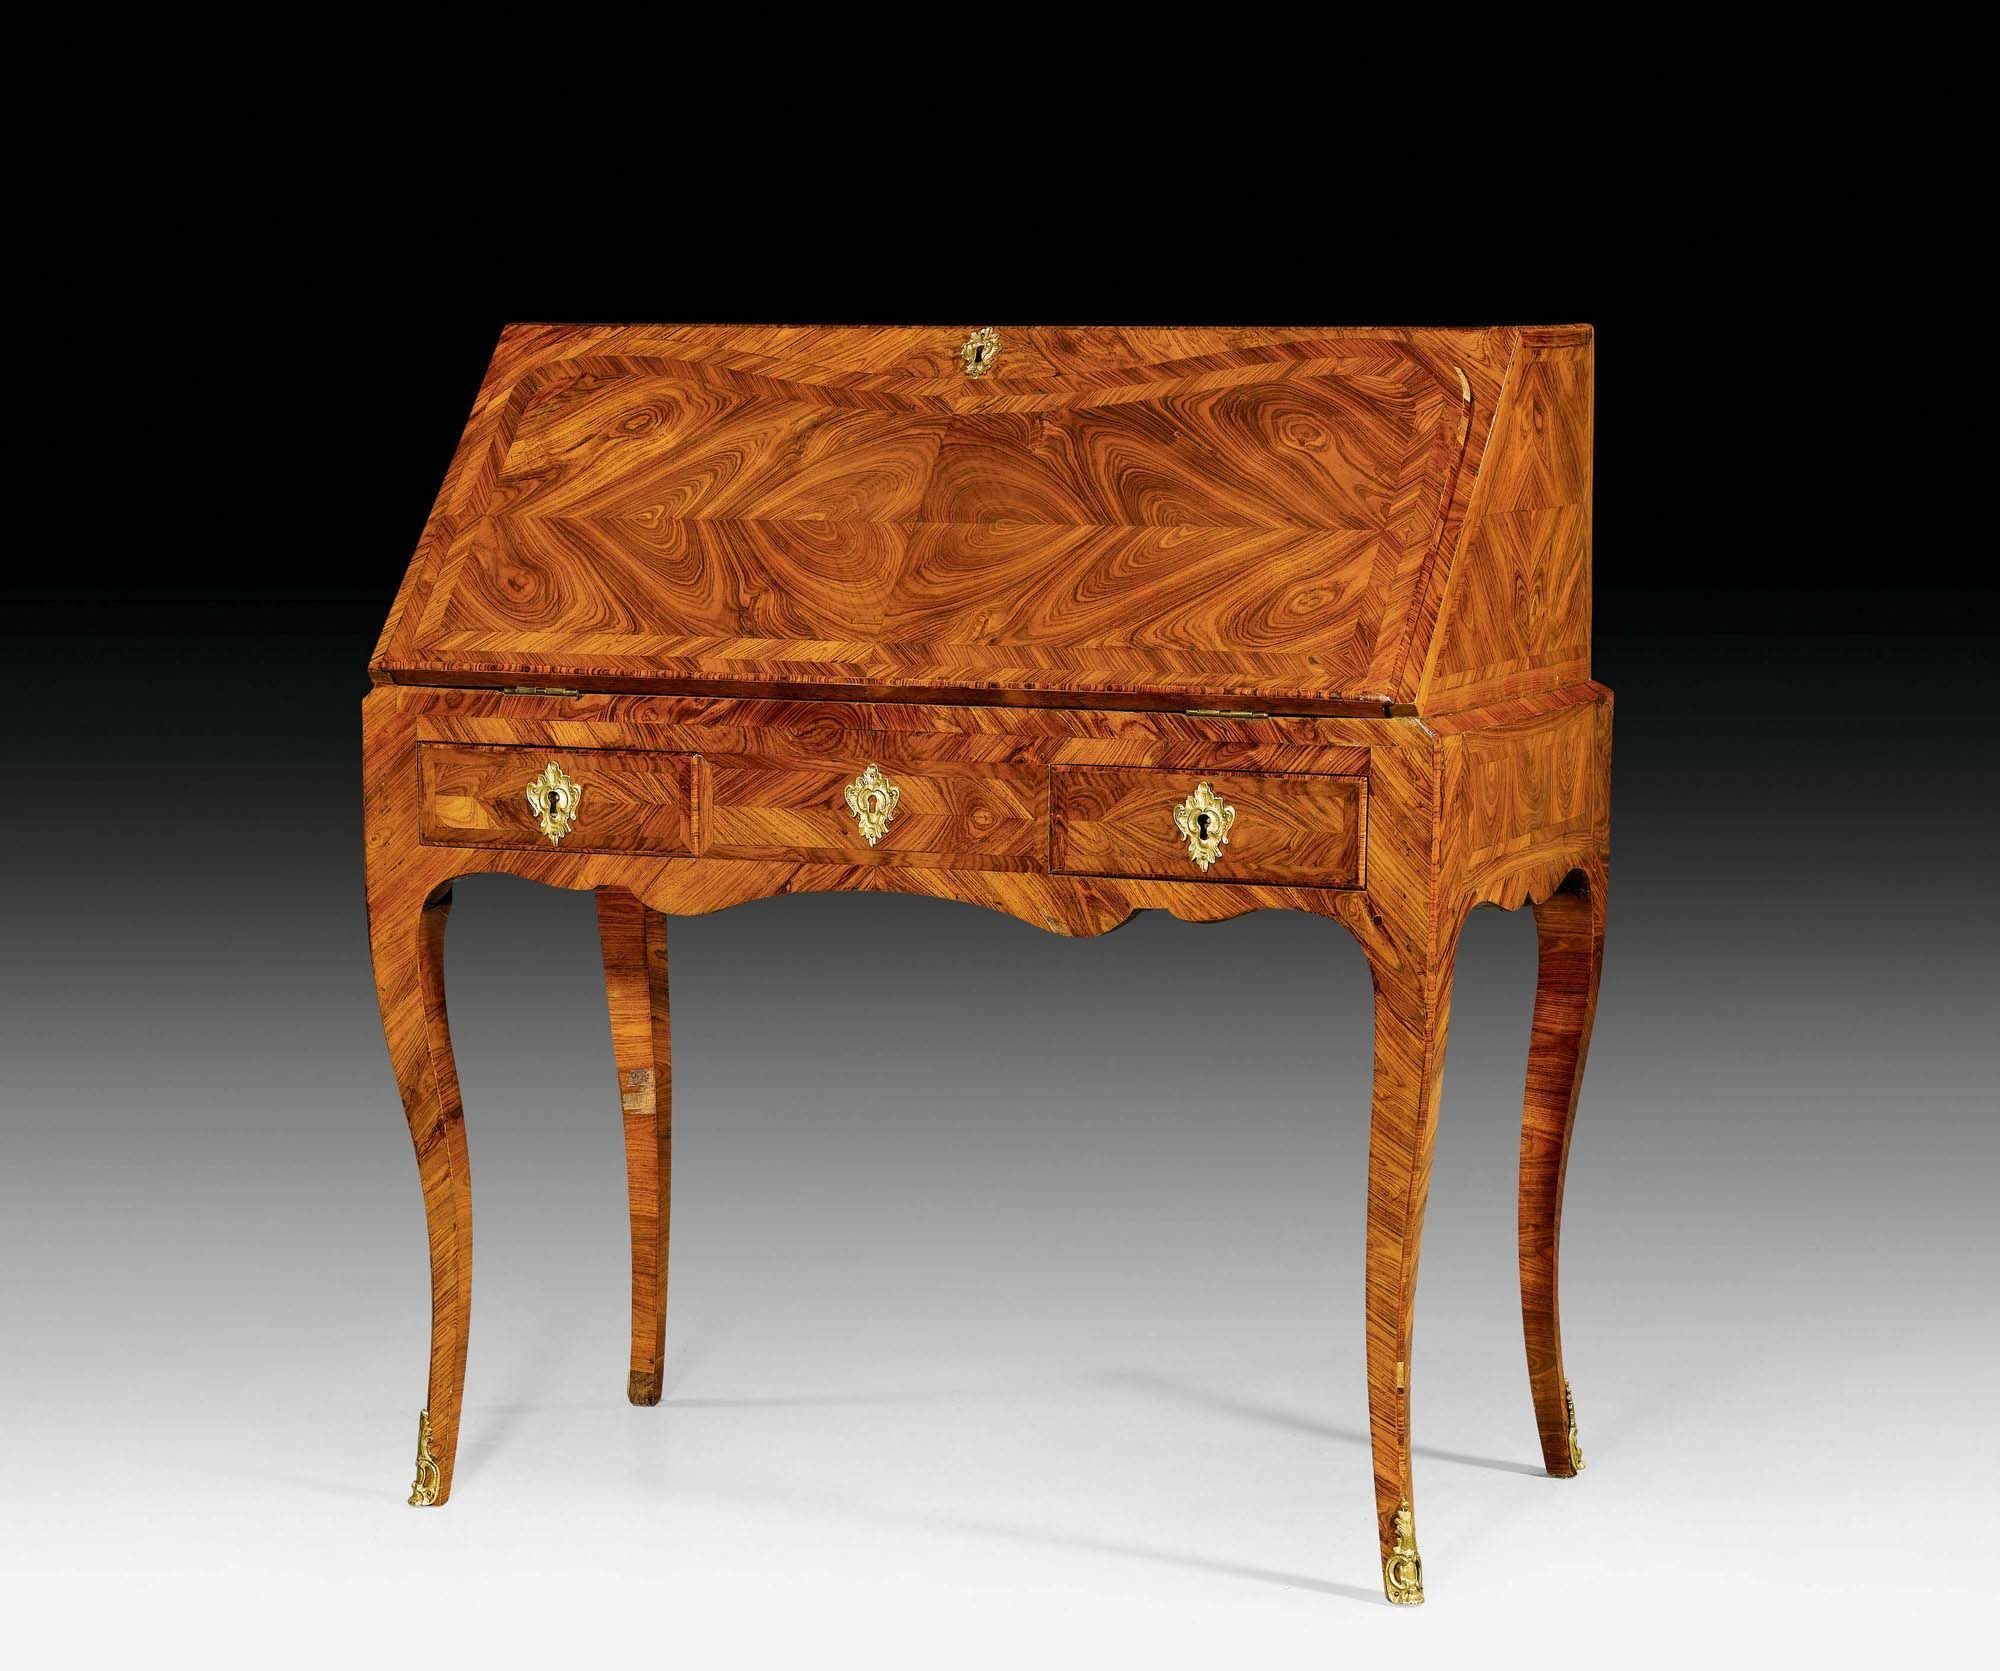 Antique Furniture · C1760 LARGE LADYu0027S DESK,Louis XV, Paris Circa 1760.  Sold For CHF 2